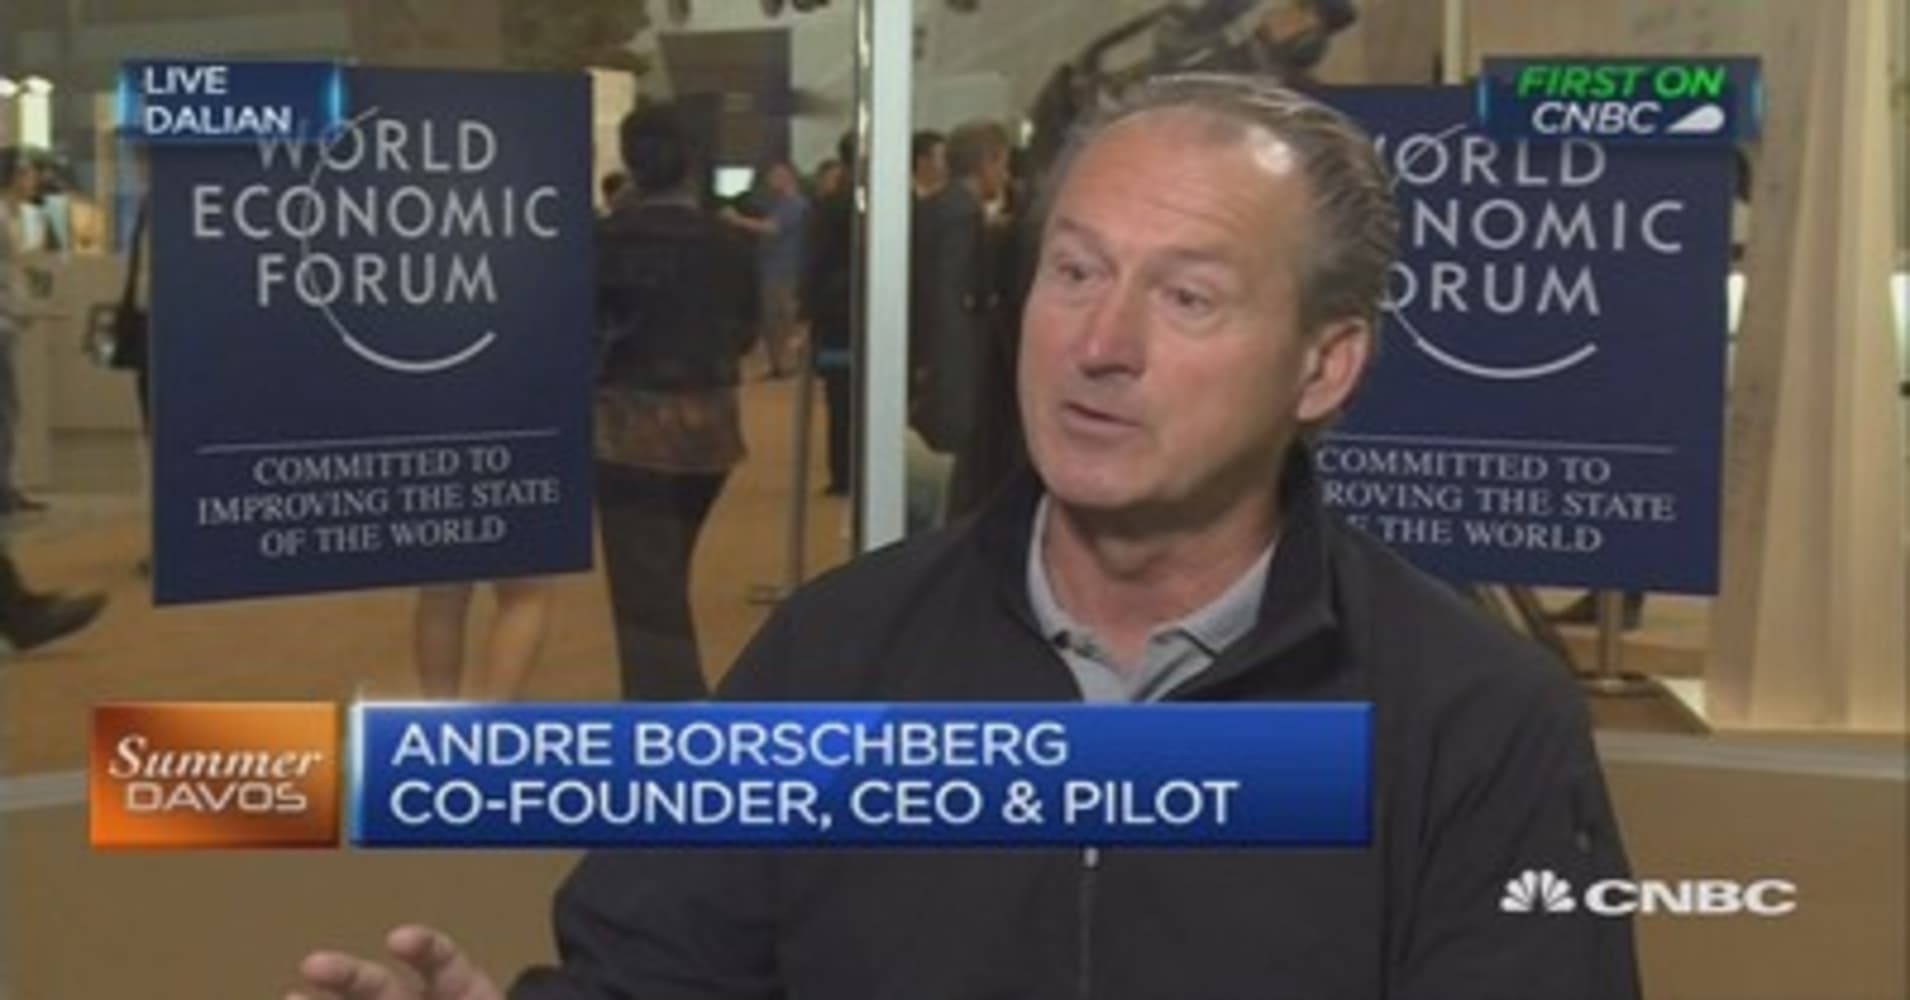 Solar Impulse CEO says this can make air transport cheaper, cleaner, quieter and safer